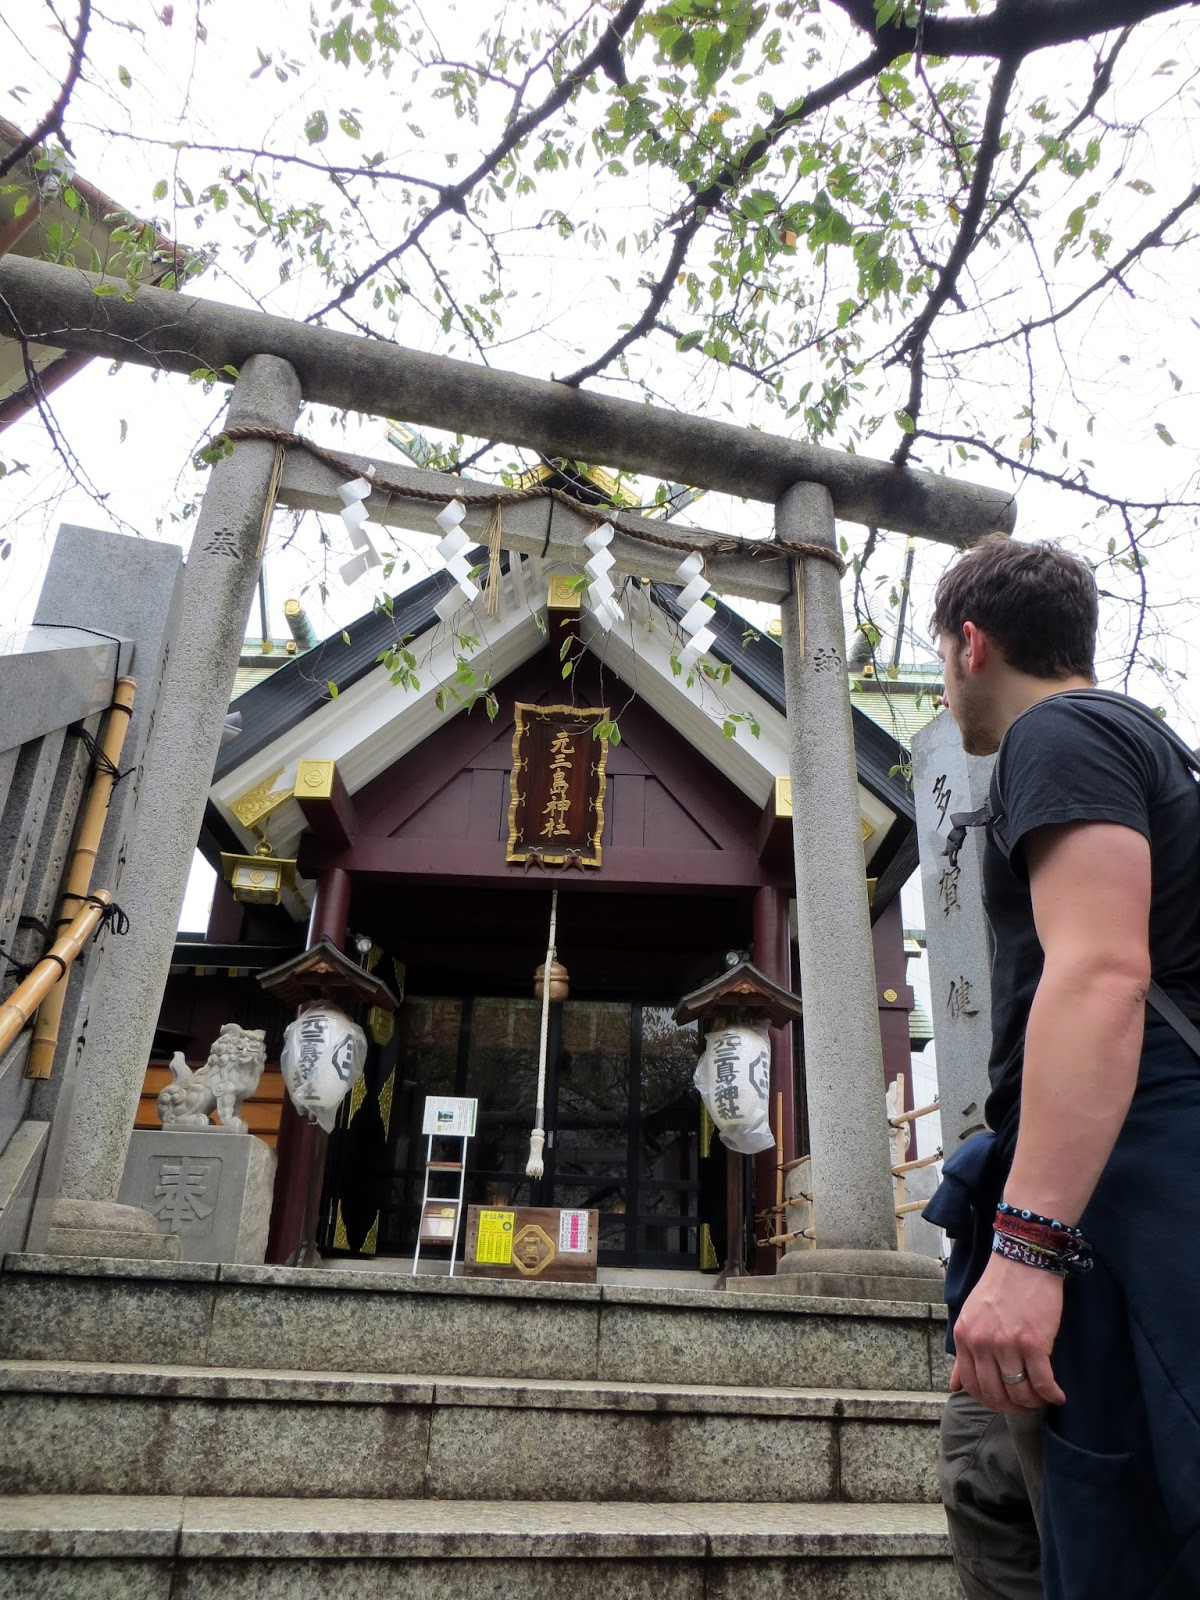 Small shinto shrine, tokyo, Alley way tokyo, streets japan, vending machines, must do tokyo, Japan